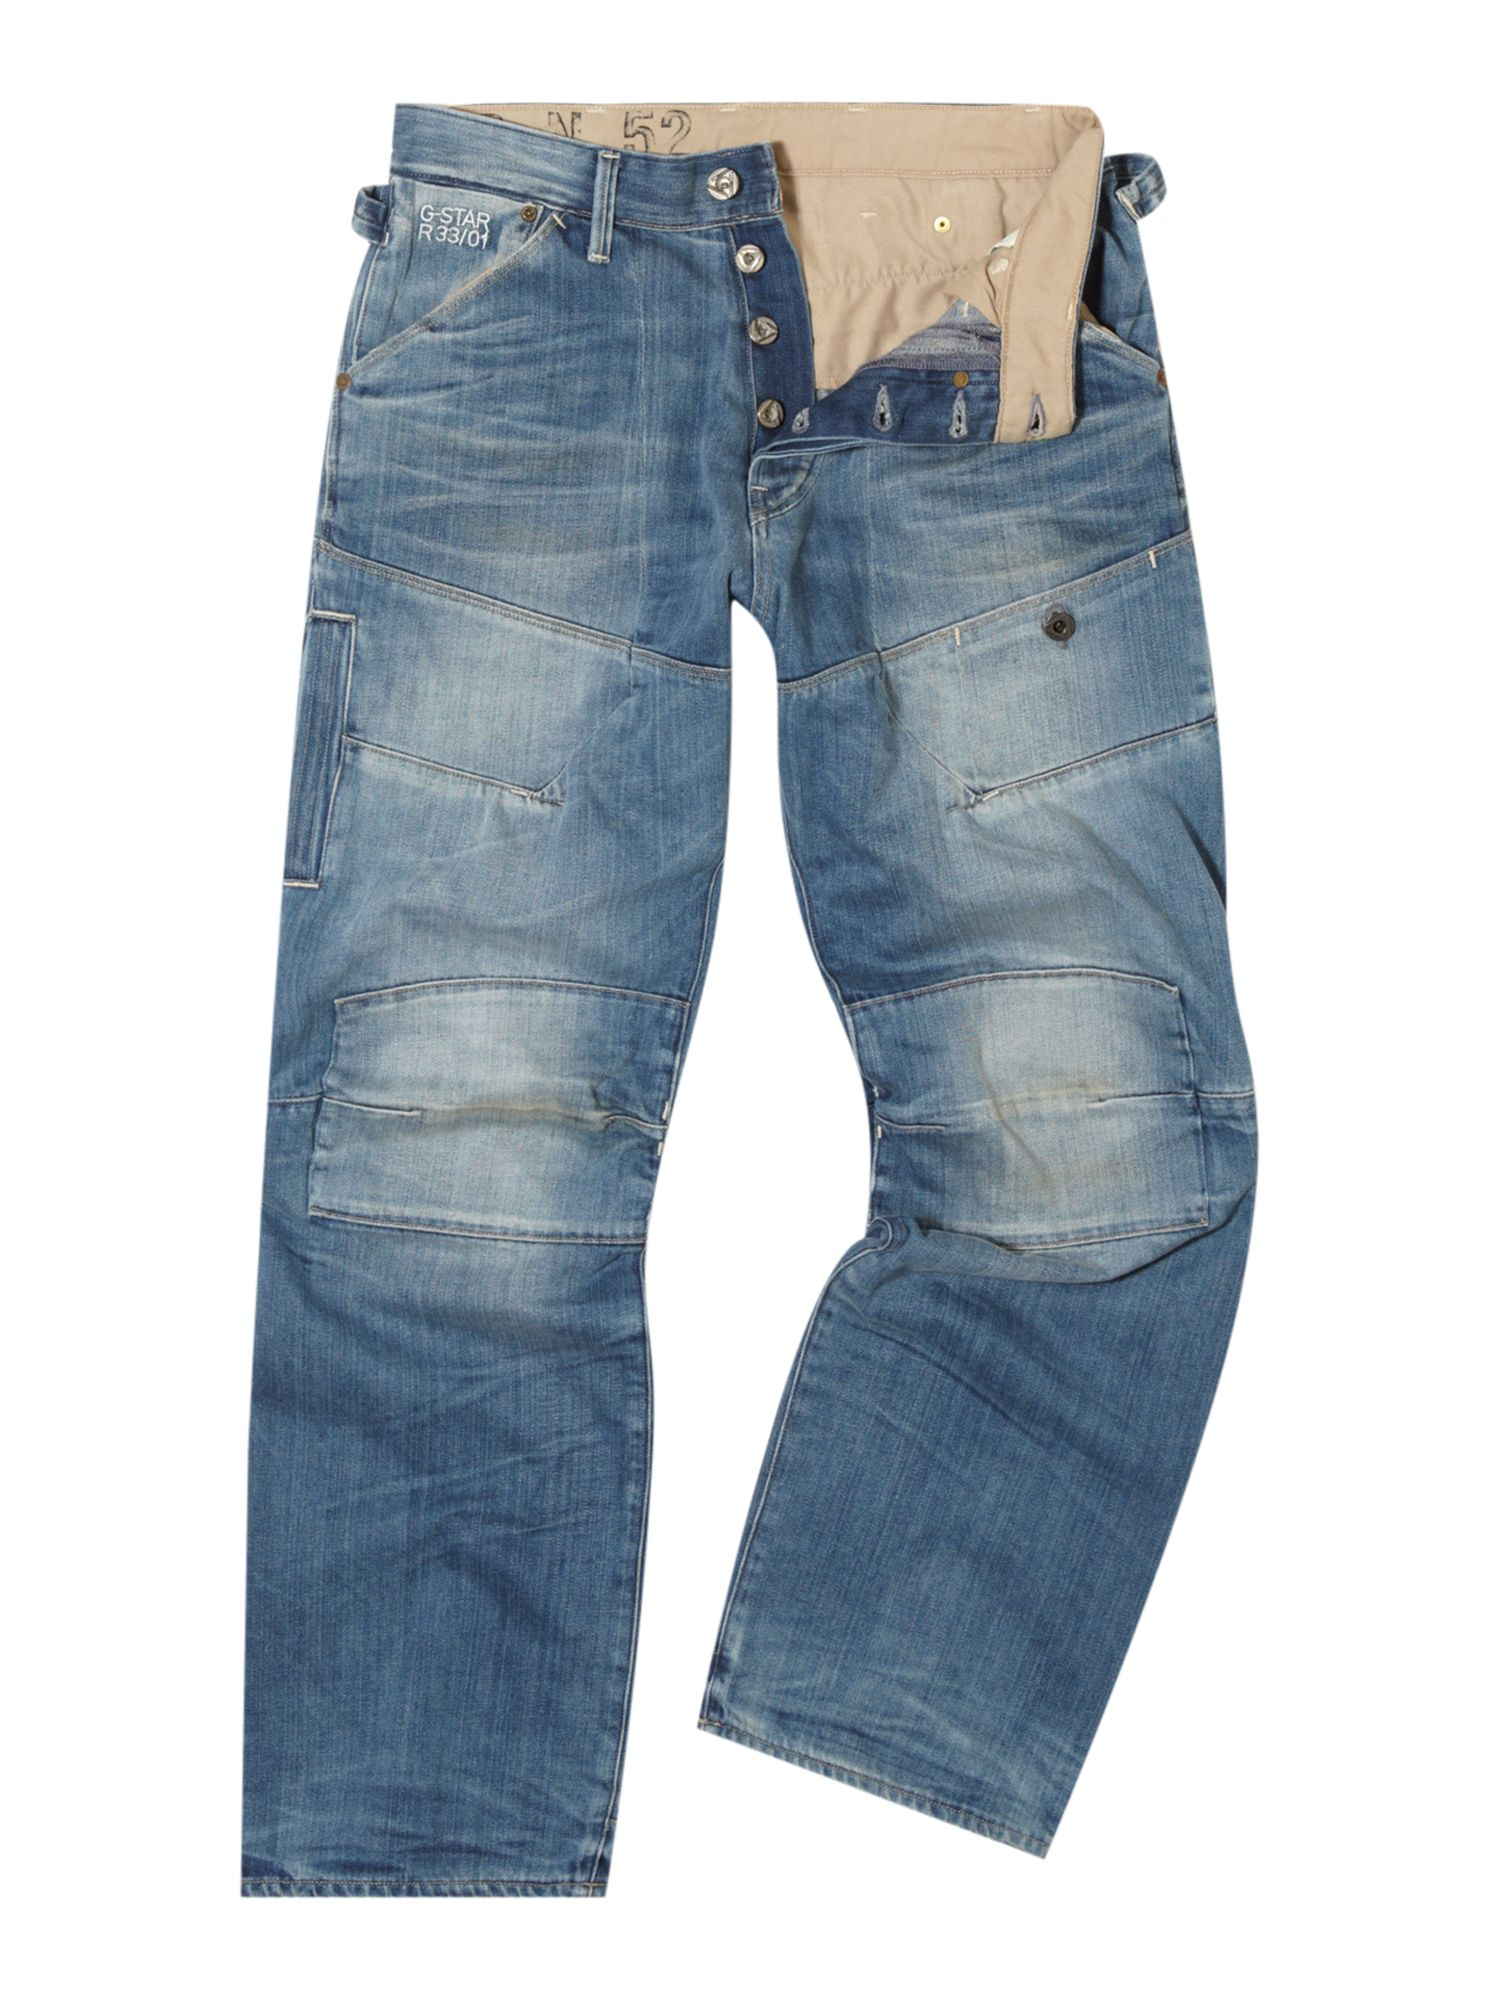 lyst g star raw elwood loose trail jeans in blue for men. Black Bedroom Furniture Sets. Home Design Ideas